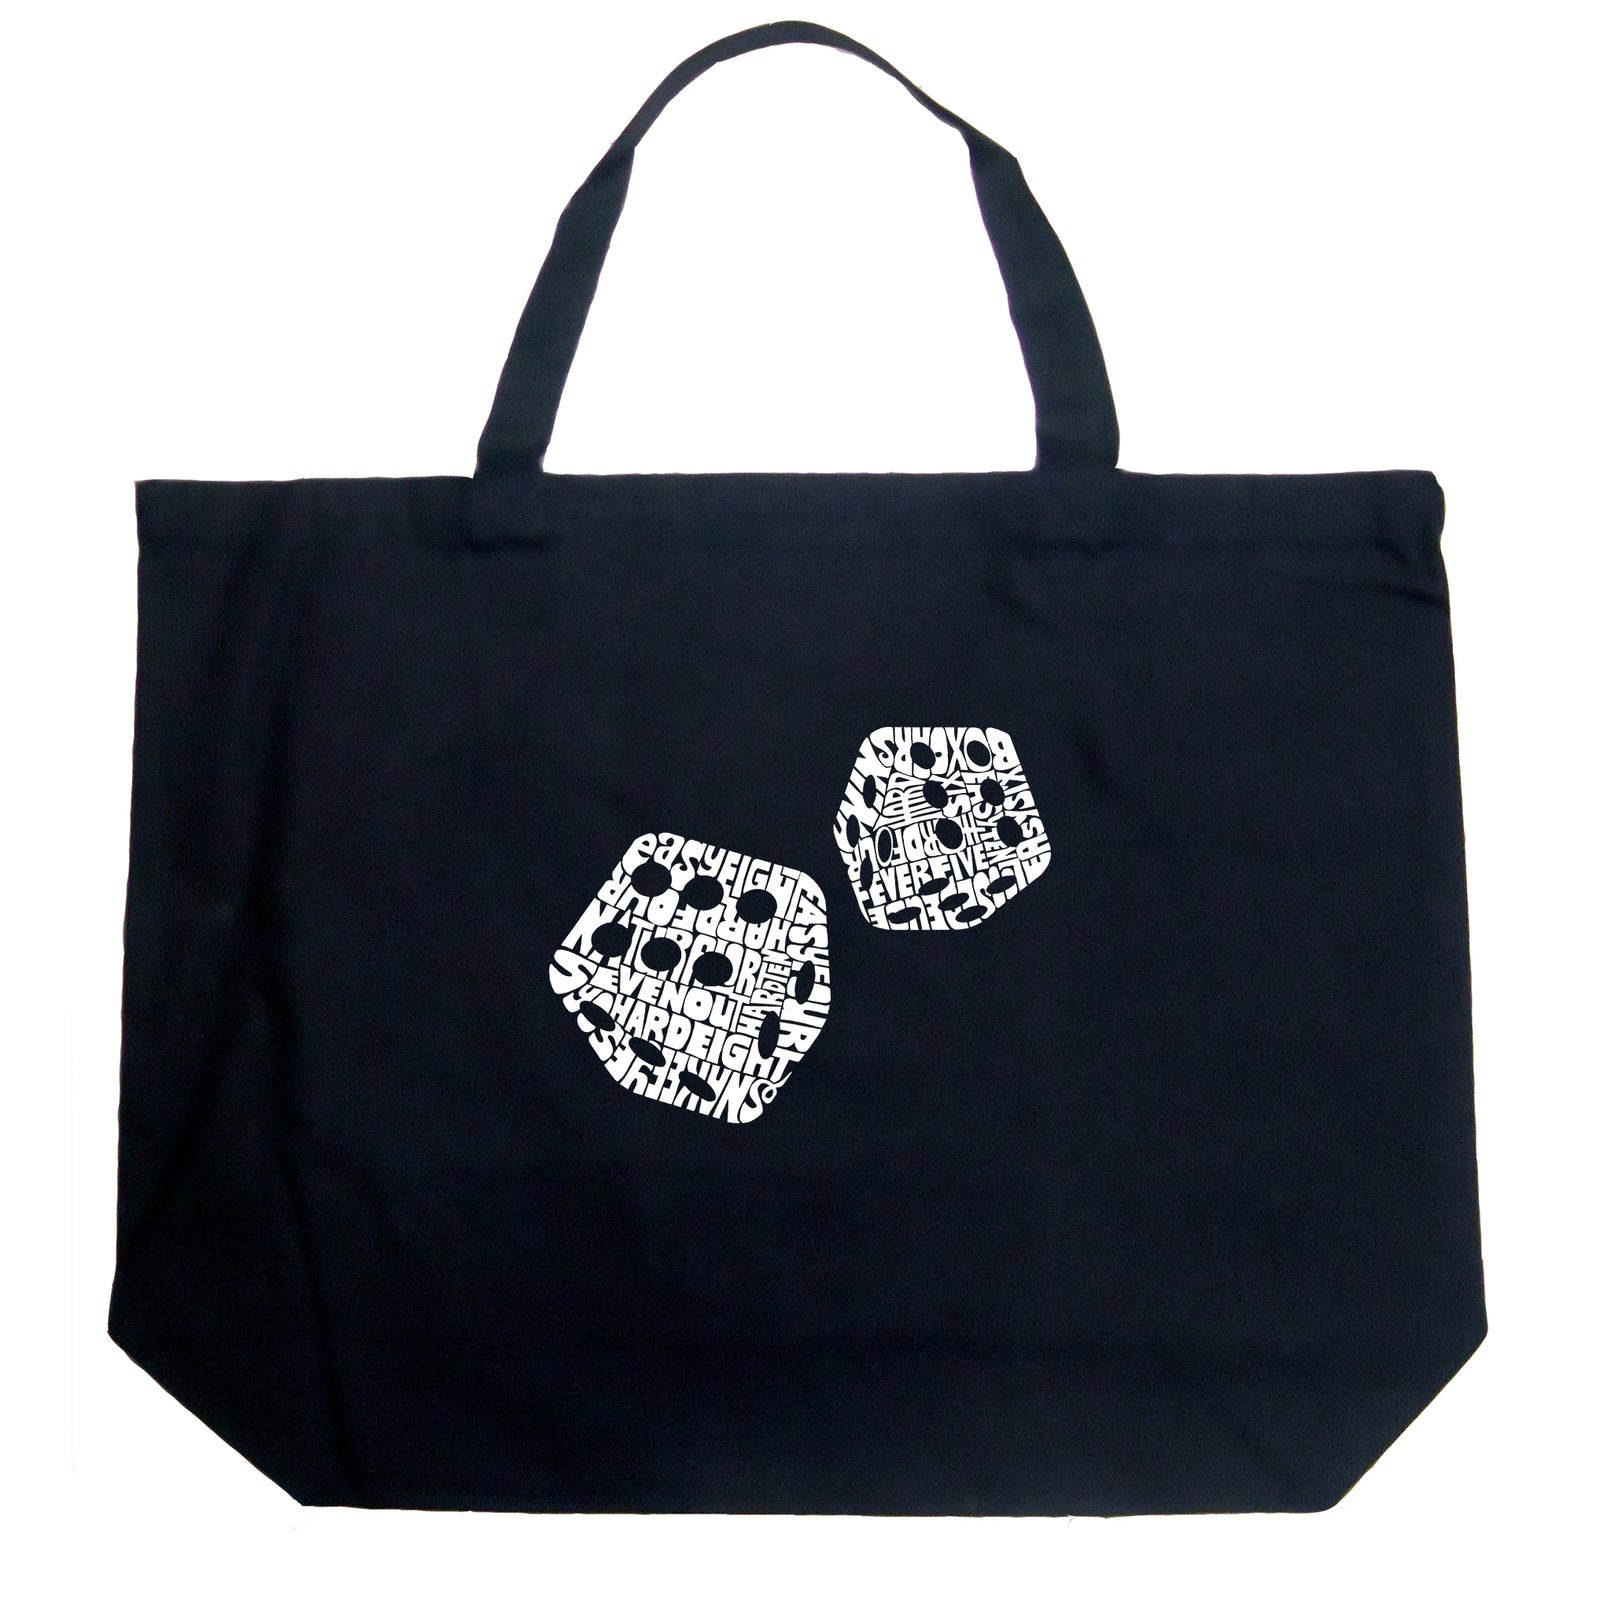 Large Tote Bag - DIFFERENT ROLLS THROWN IN THE GAME OF CRAPS